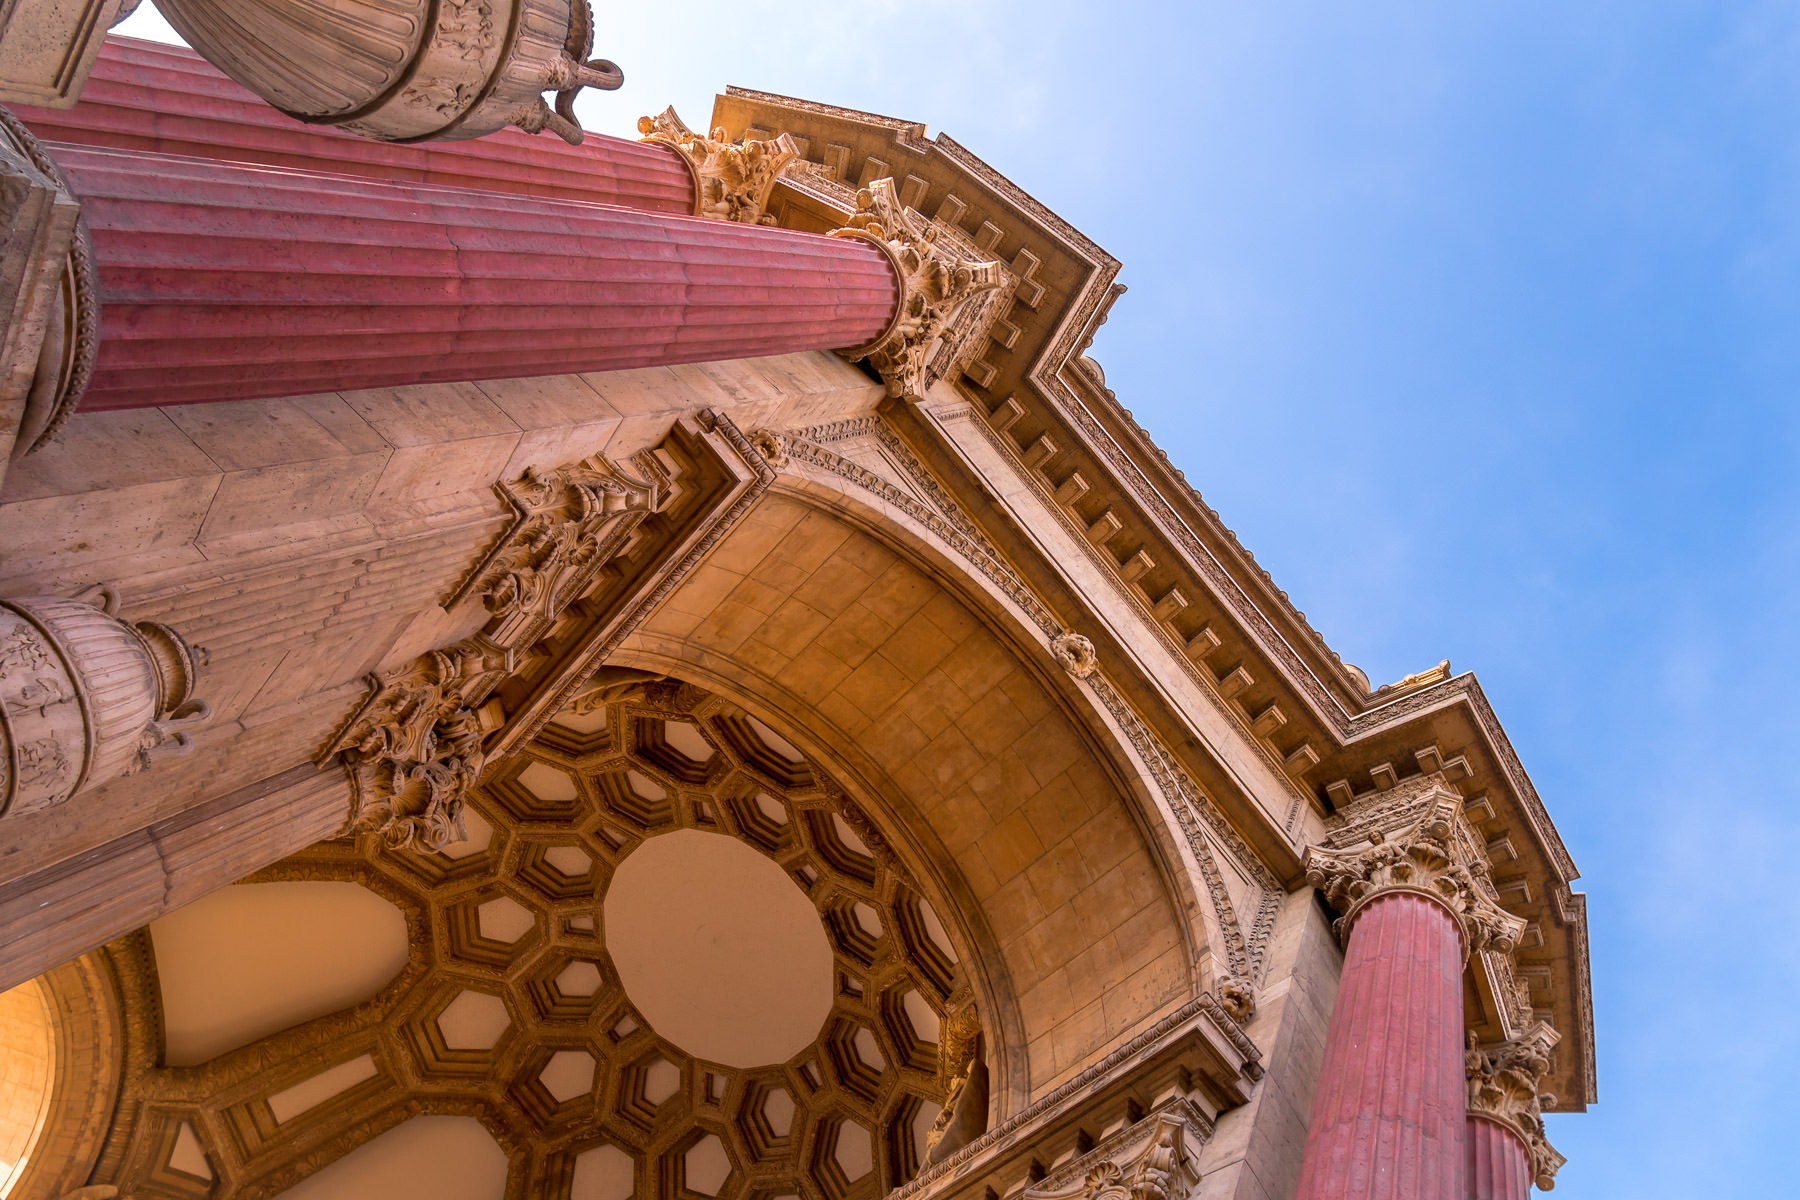 San Francisco's Palace of Fine Arts rises into the sky over the Bay Area.